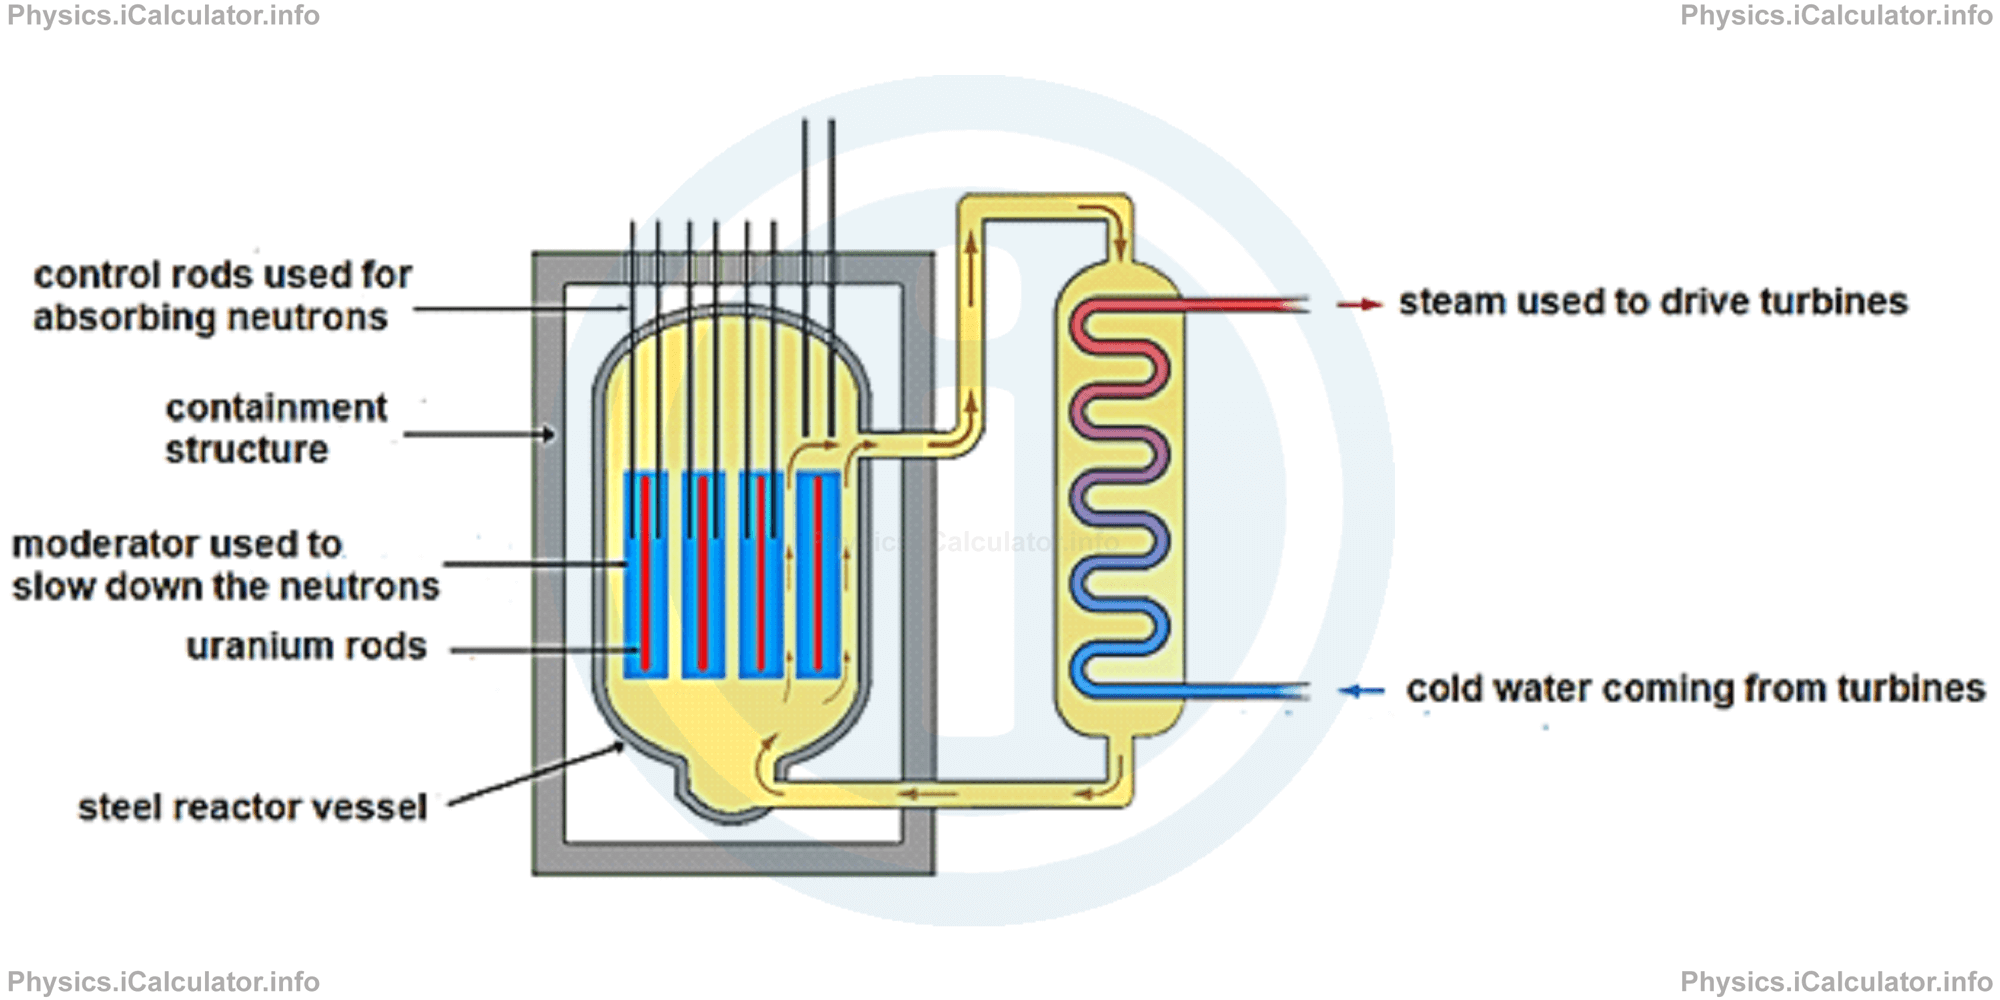 Physics Tutorials: This image provides visual information for the physics tutorial Nuclear Reactions